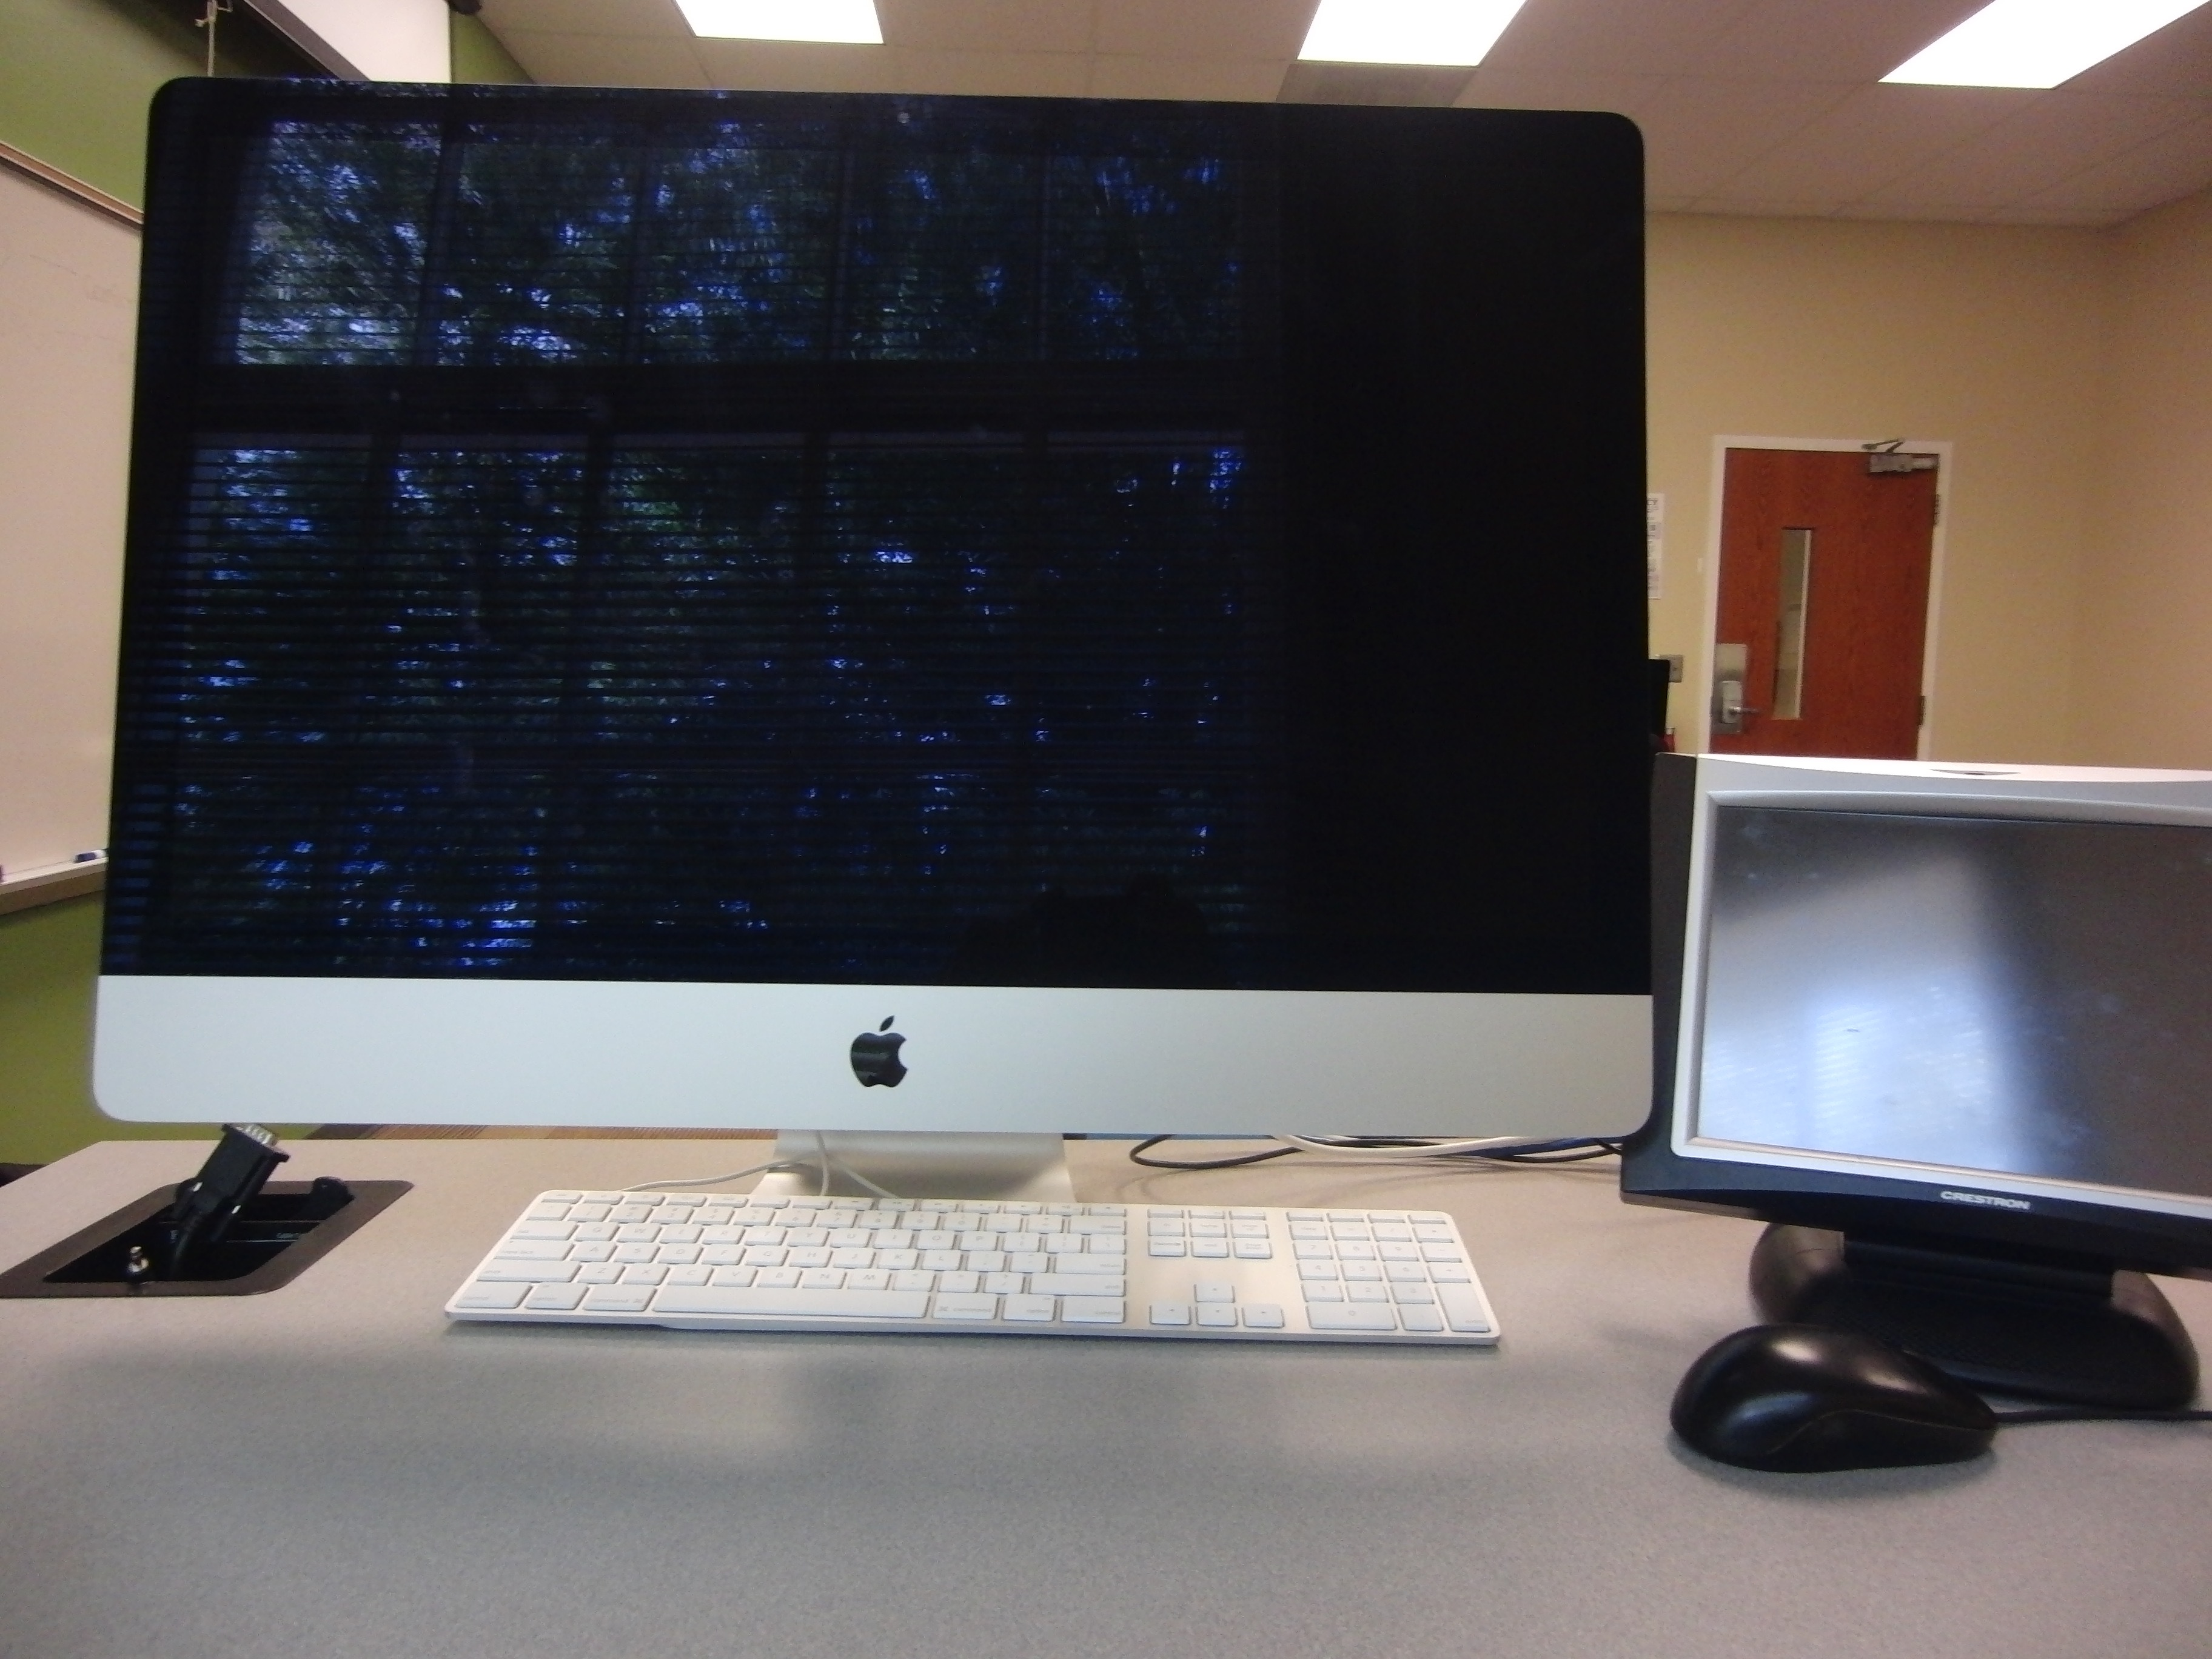 Photo of apple computer located at the instructor's station